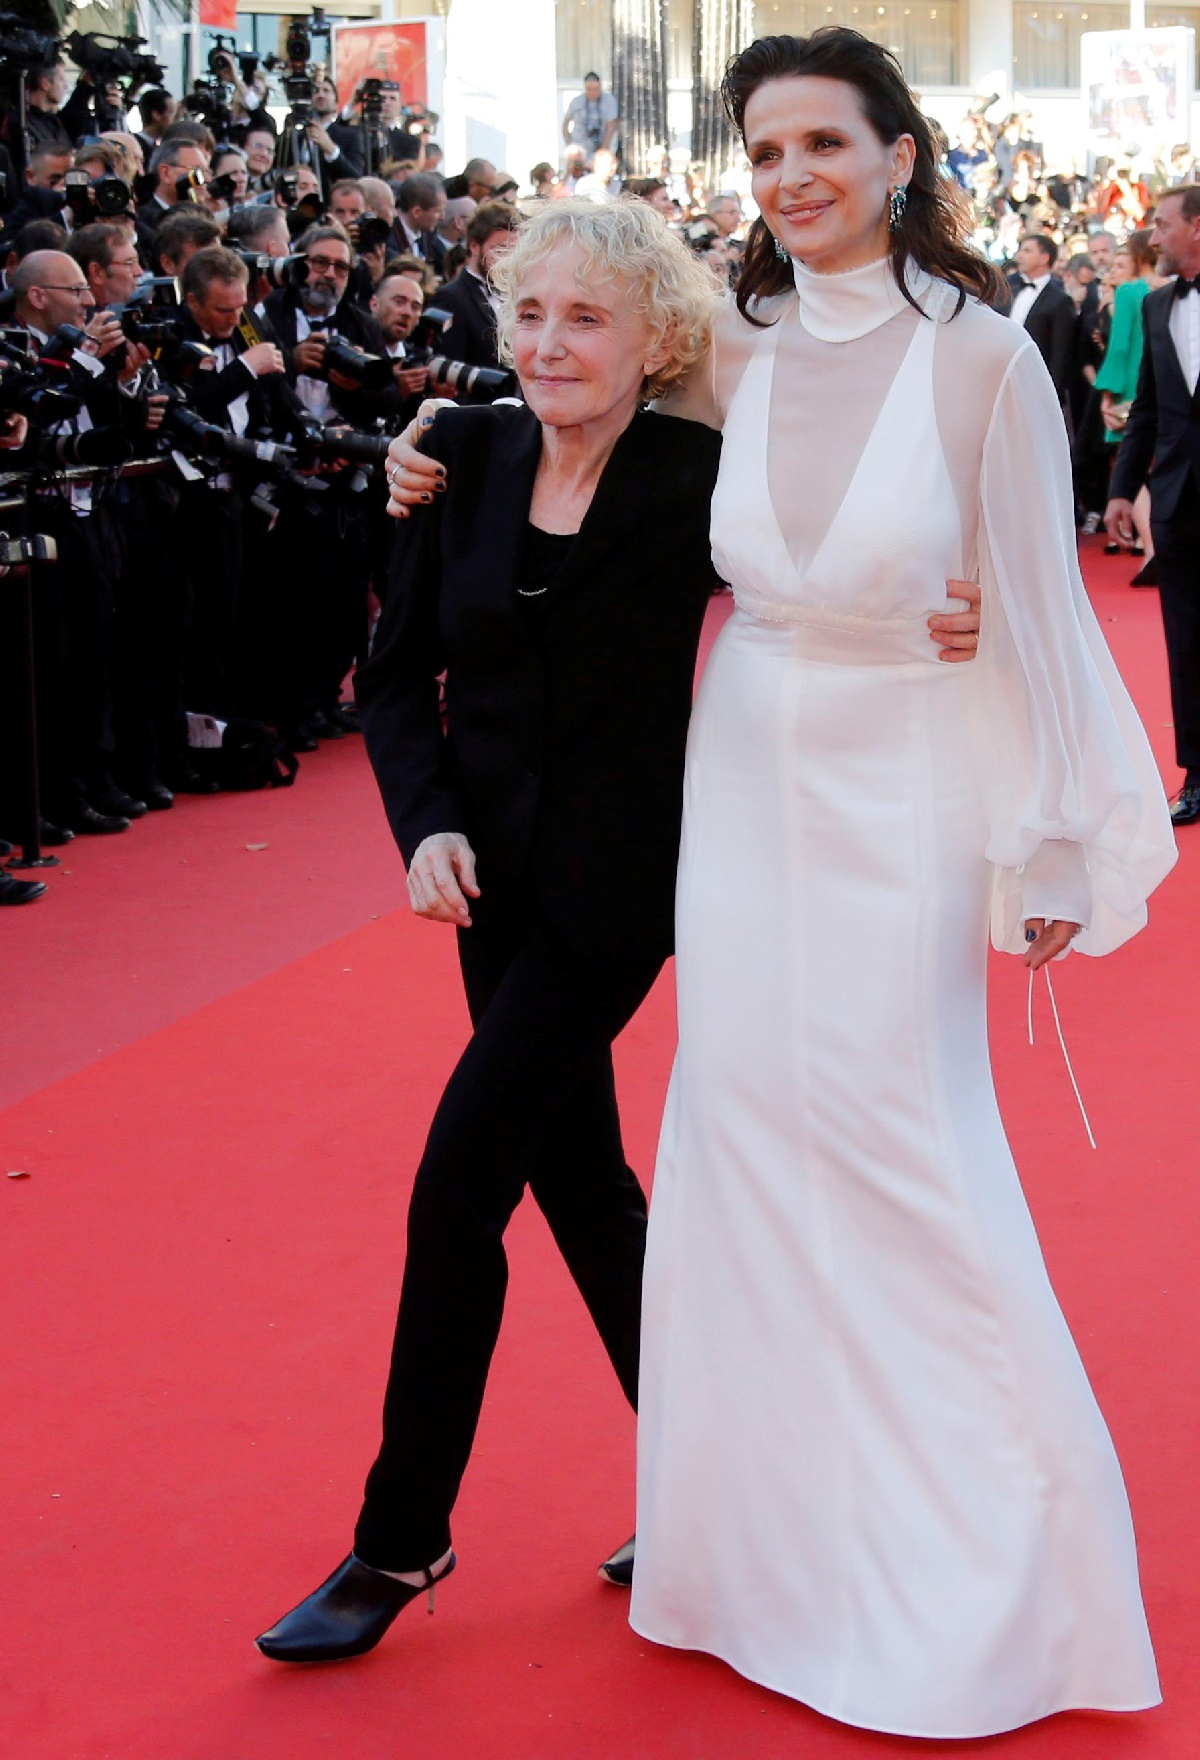 "70th Cannes Film Festival - Screening of the film ""Okja"" in competition - Red Carpet Arrivals- Cannes, France. 19/05/2017. Actress Juliette Binoche and Director Claire Denis poses. REUTERS/Regis Duvignau"